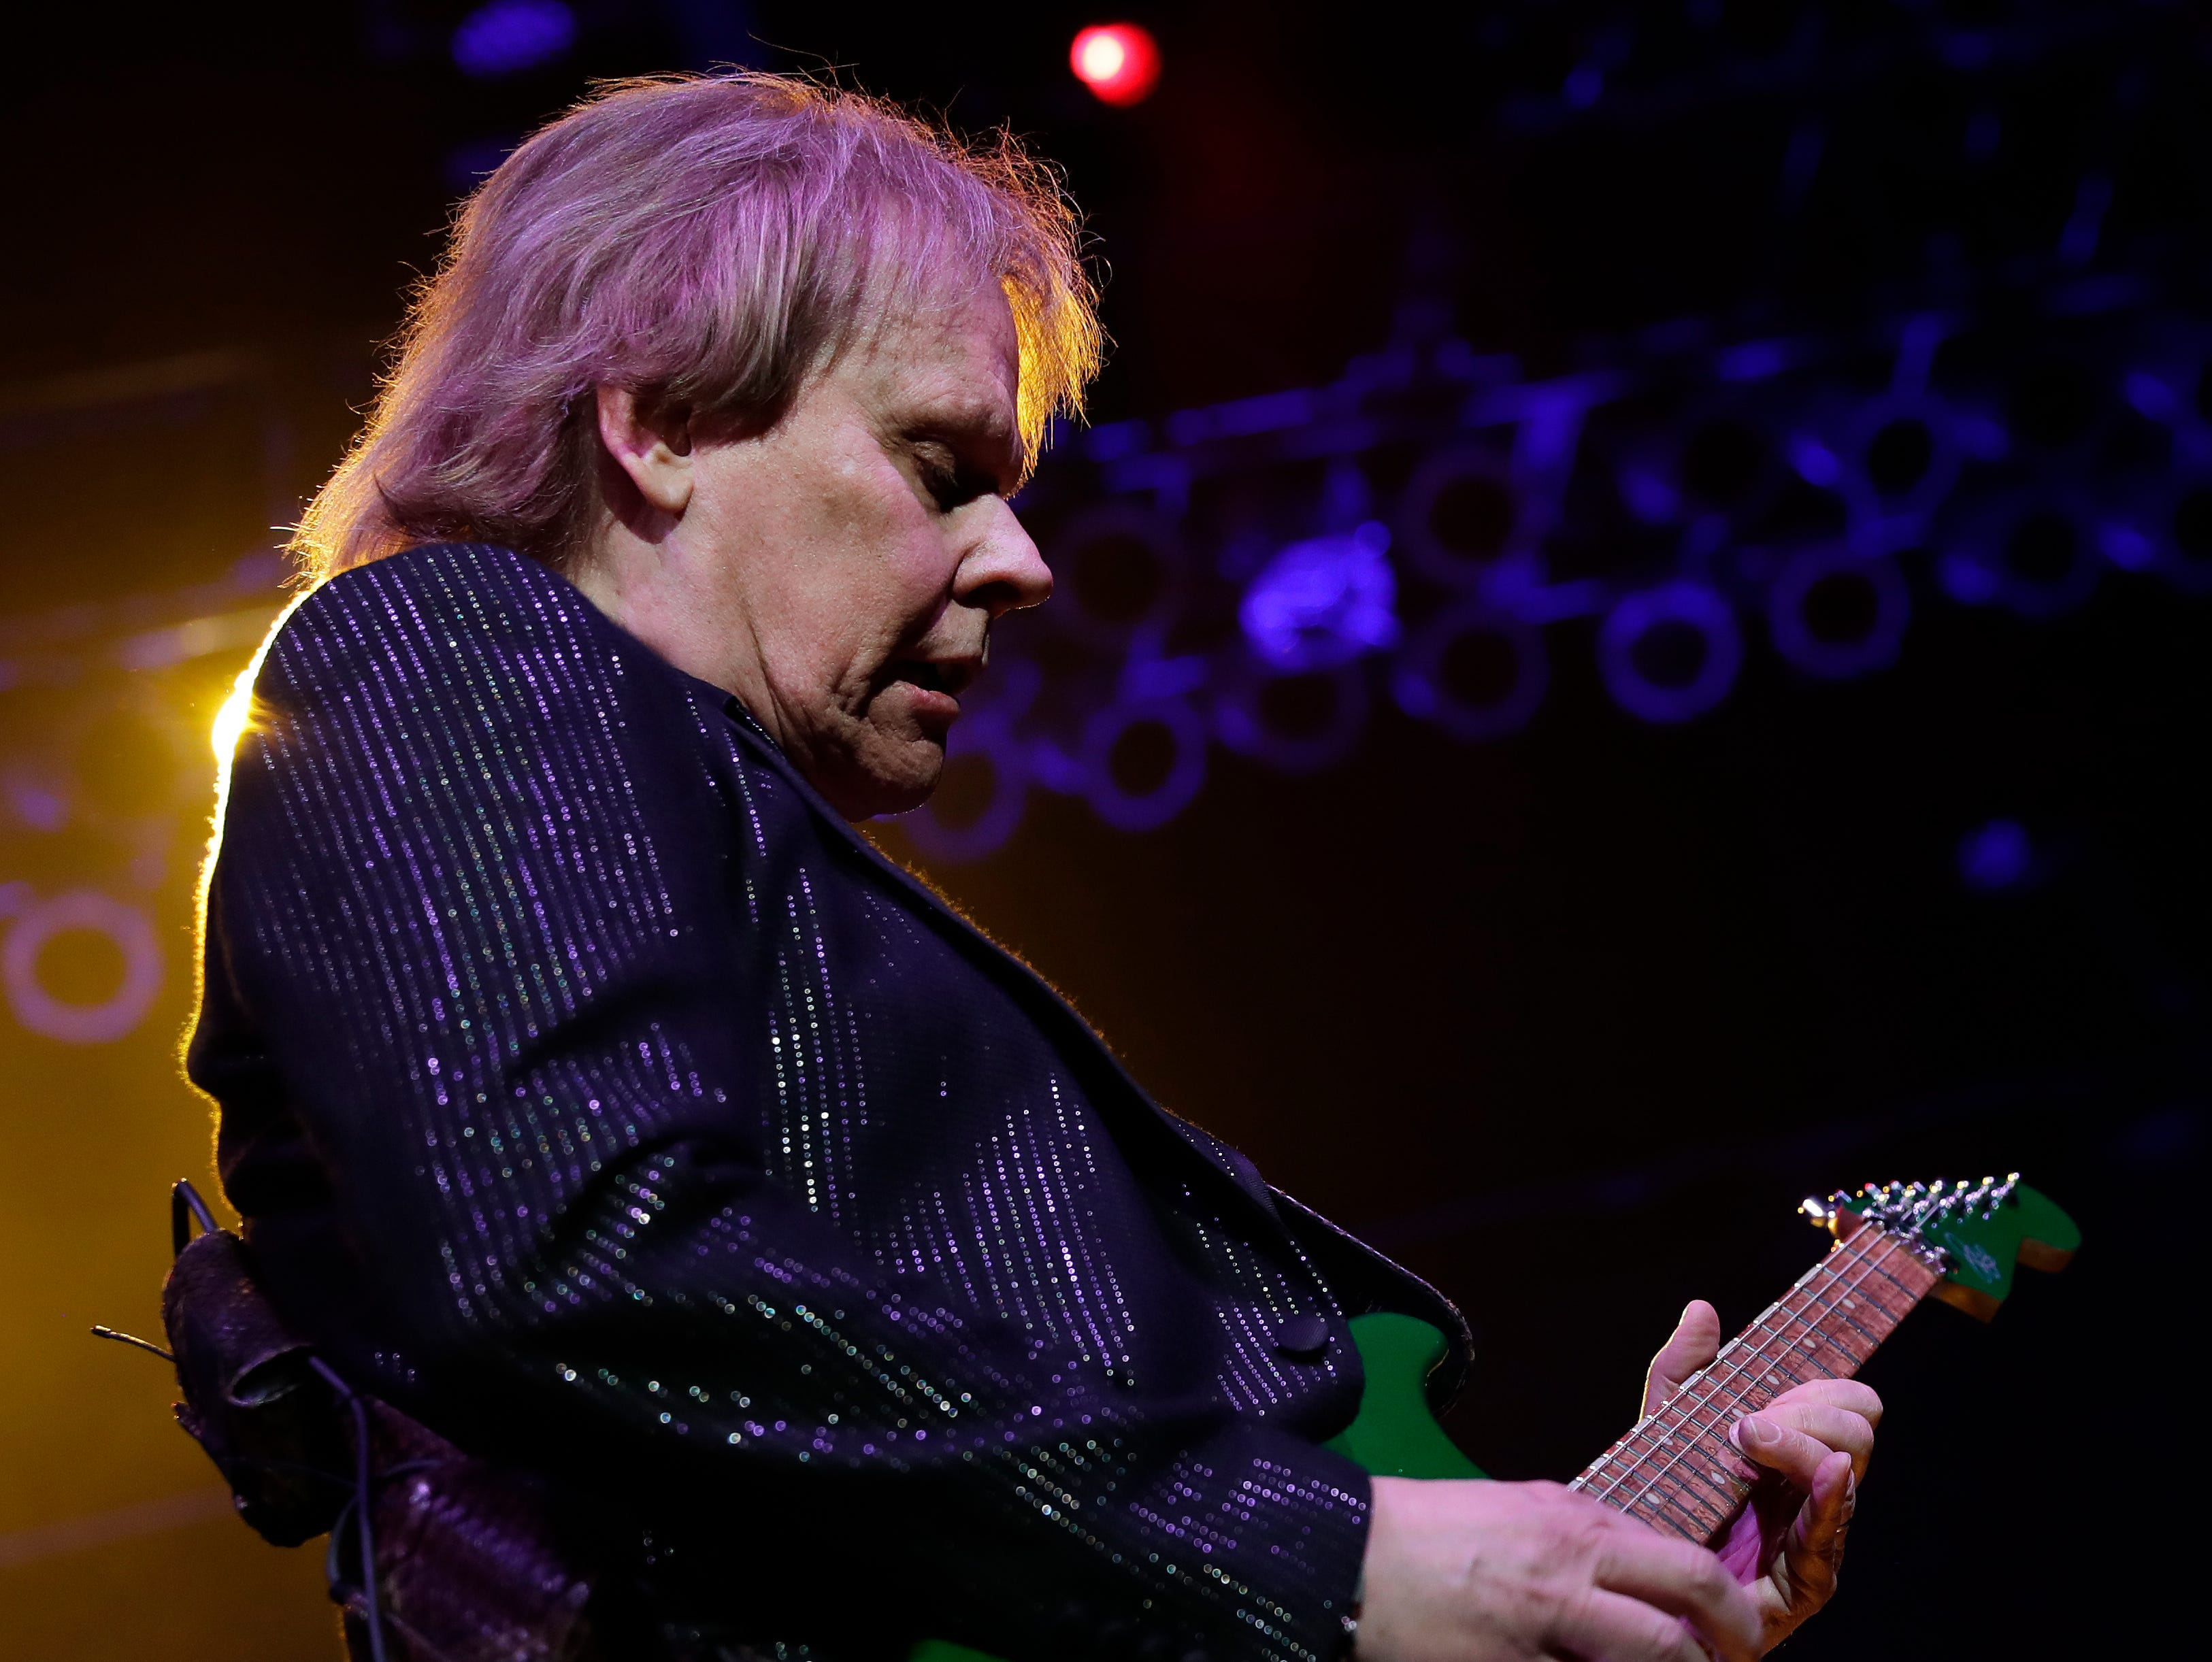 Styx band member James Young performs Dec. 29, 2018 at the Resch Center in Ashwaubenon, Wis.